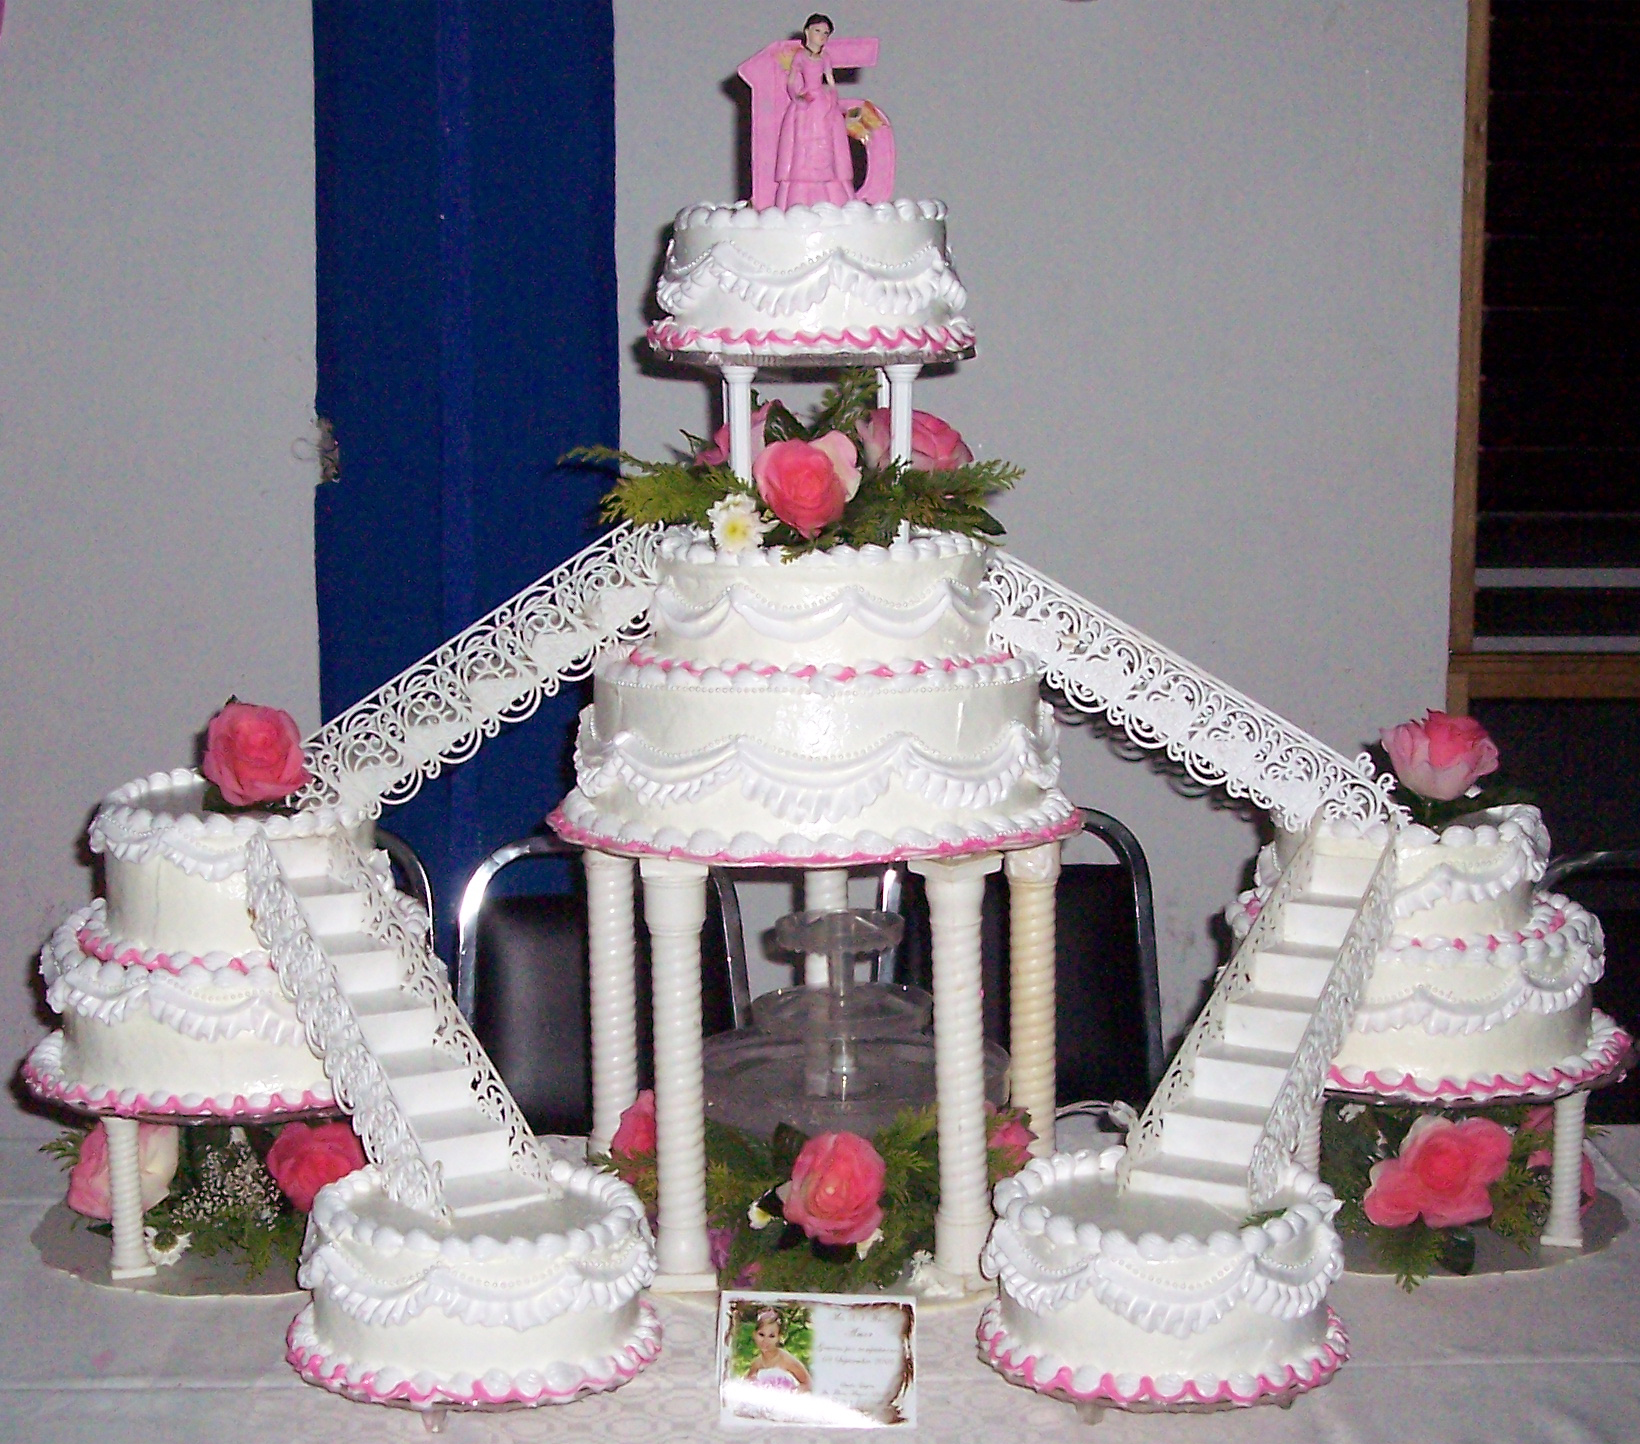 Piscina Plastico Quinceanera Cakes – Decoration Ideas | Little Birthday Cakes